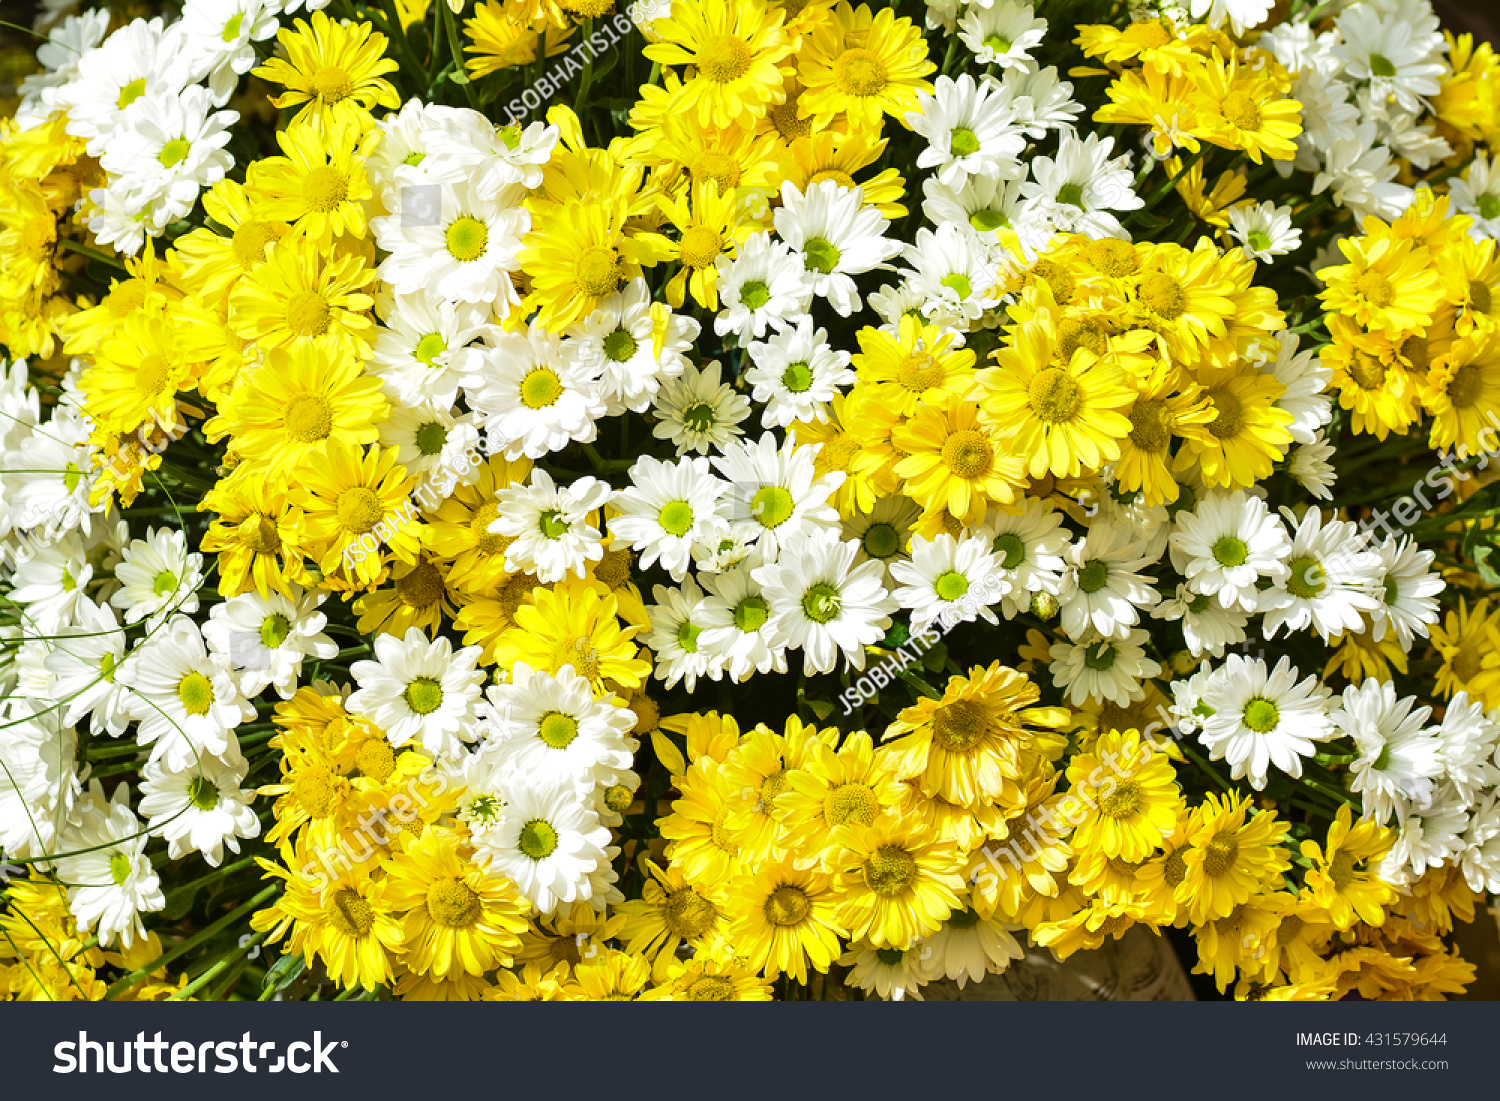 Chrysanthemum one most beautiful flower there stock photo edit now chrysanthemum is one of the most beautiful flower there are many kinds types or izmirmasajfo